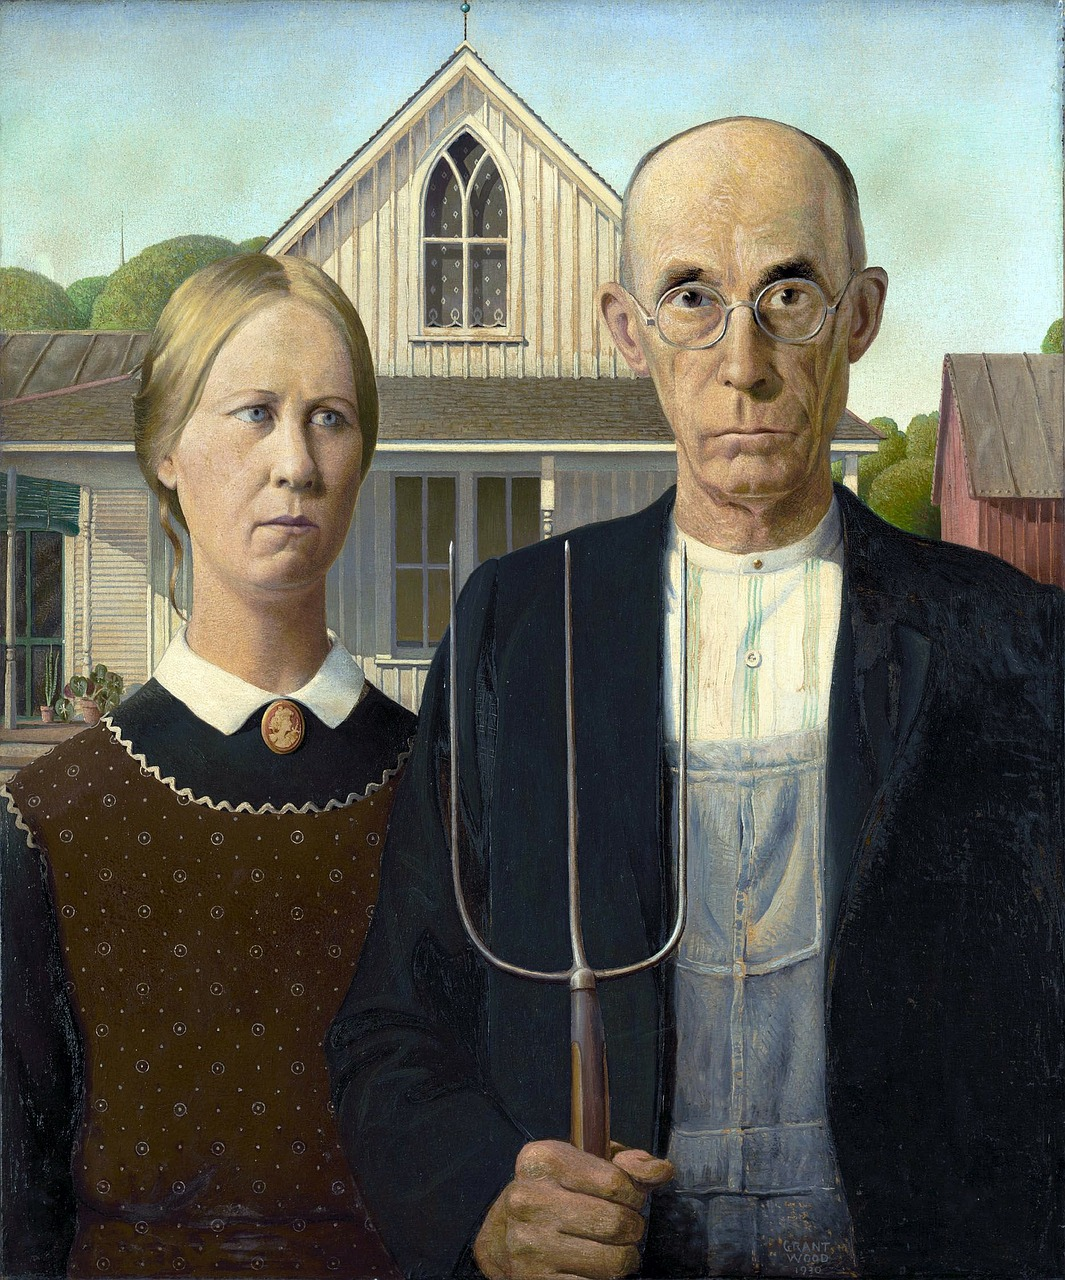 painting grant wood man free photo